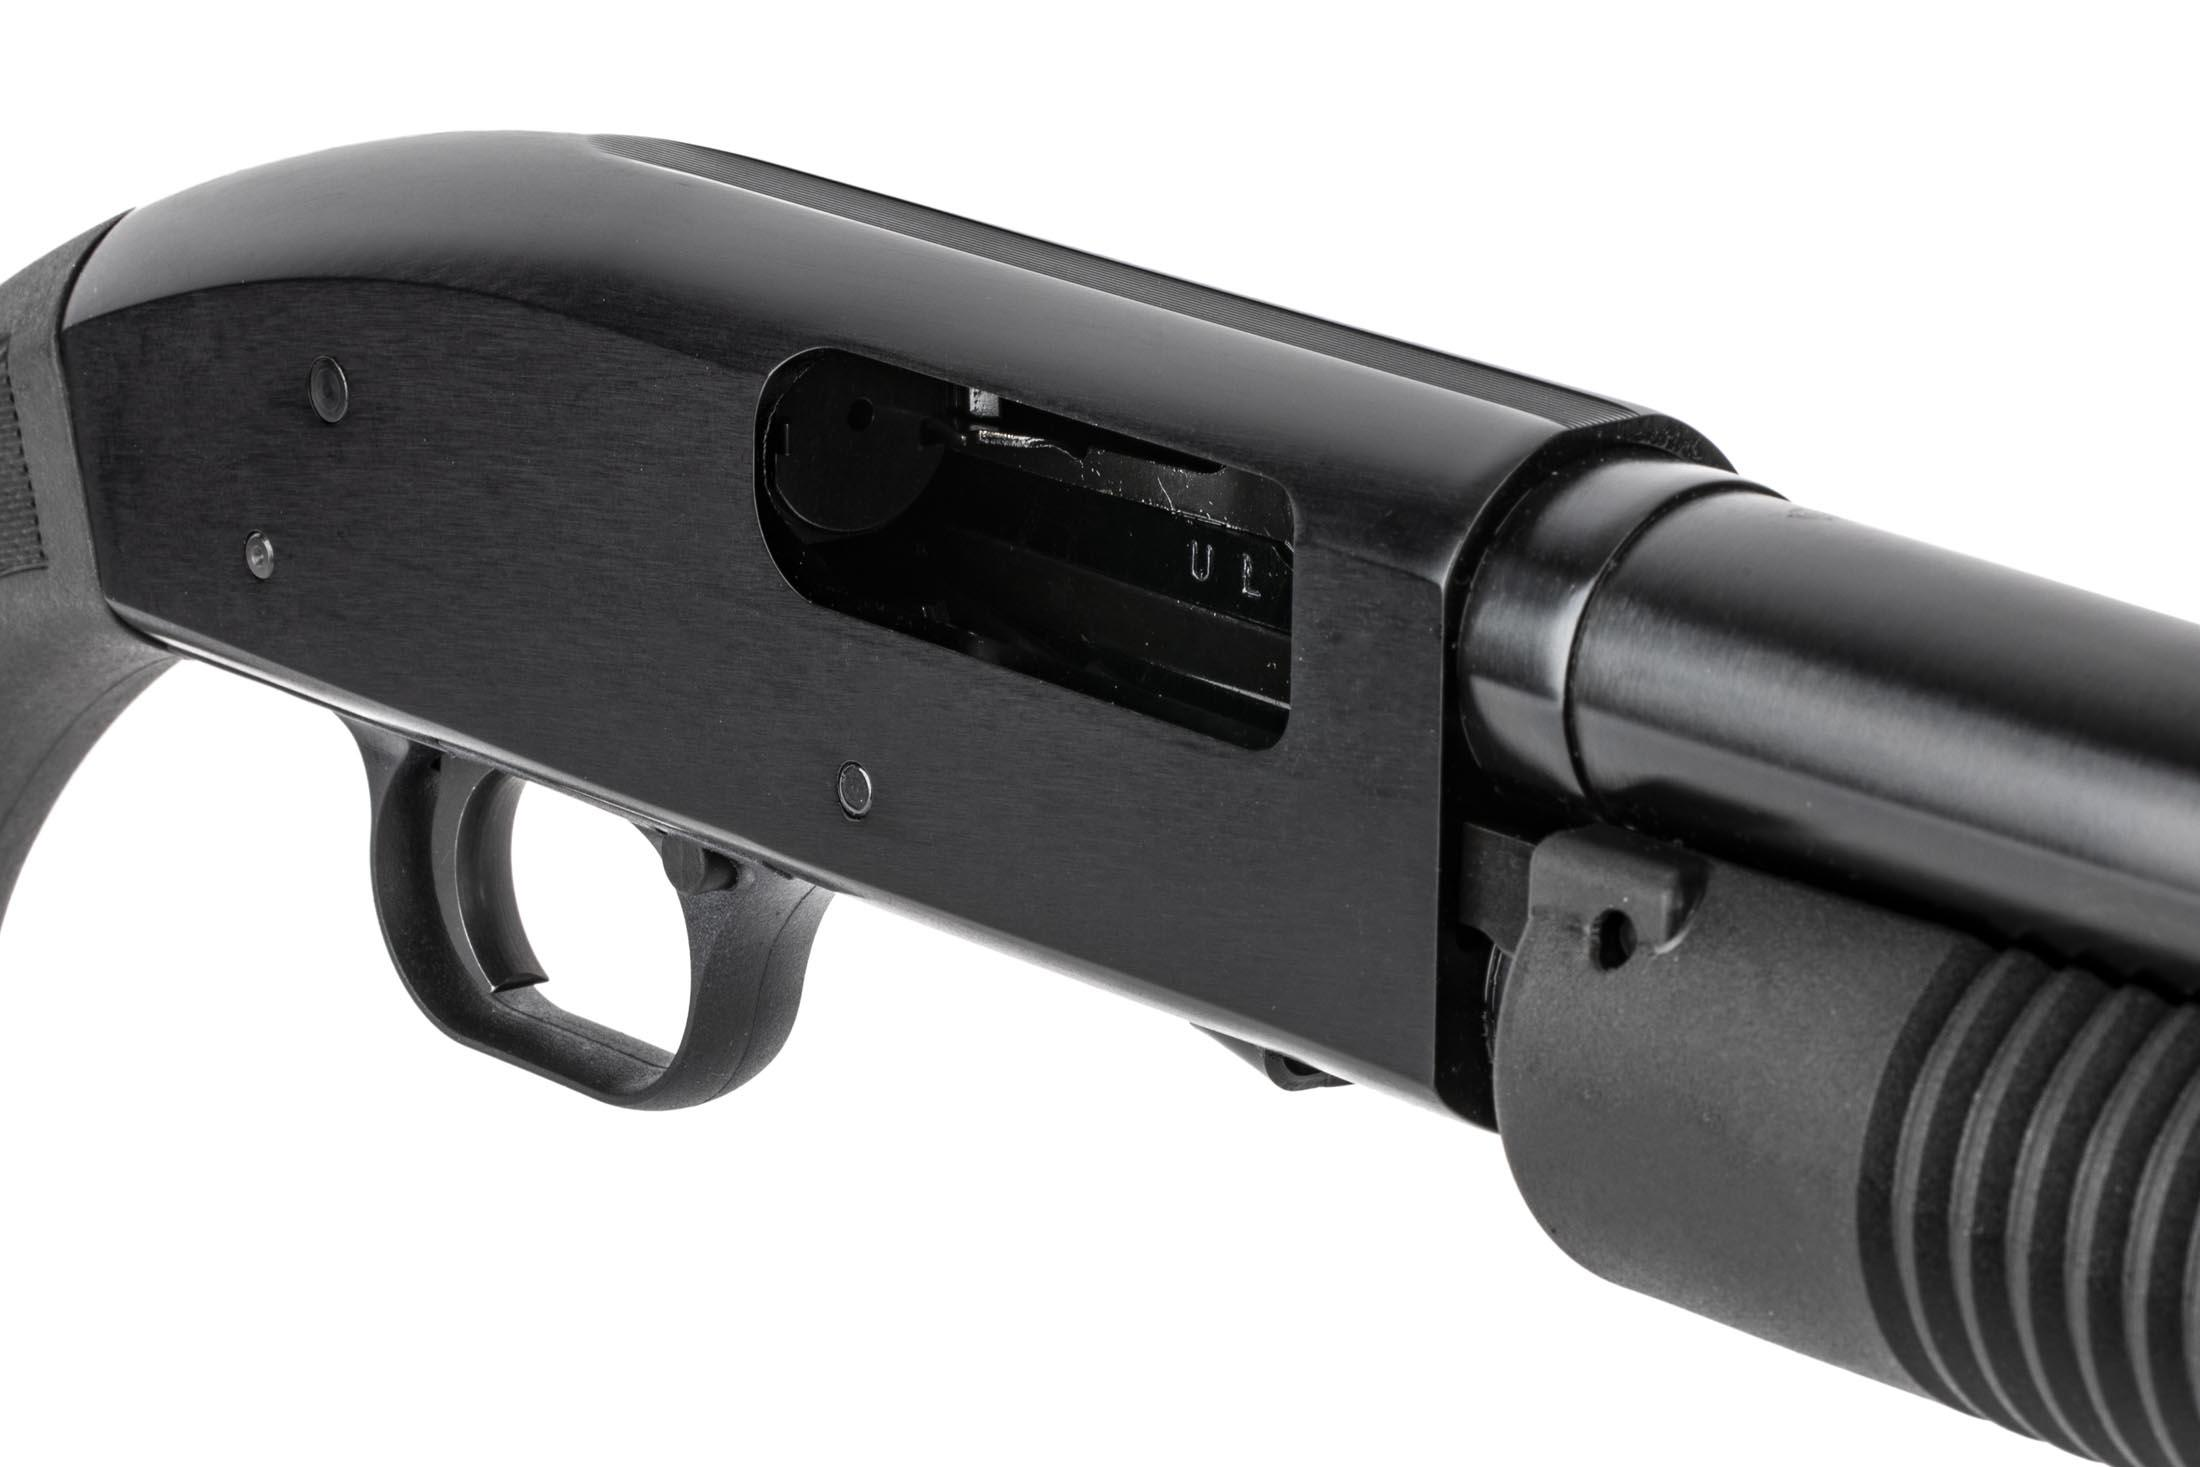 Mossberg Maverick 88 Security - 12 gauge With Black Synthetic Stock